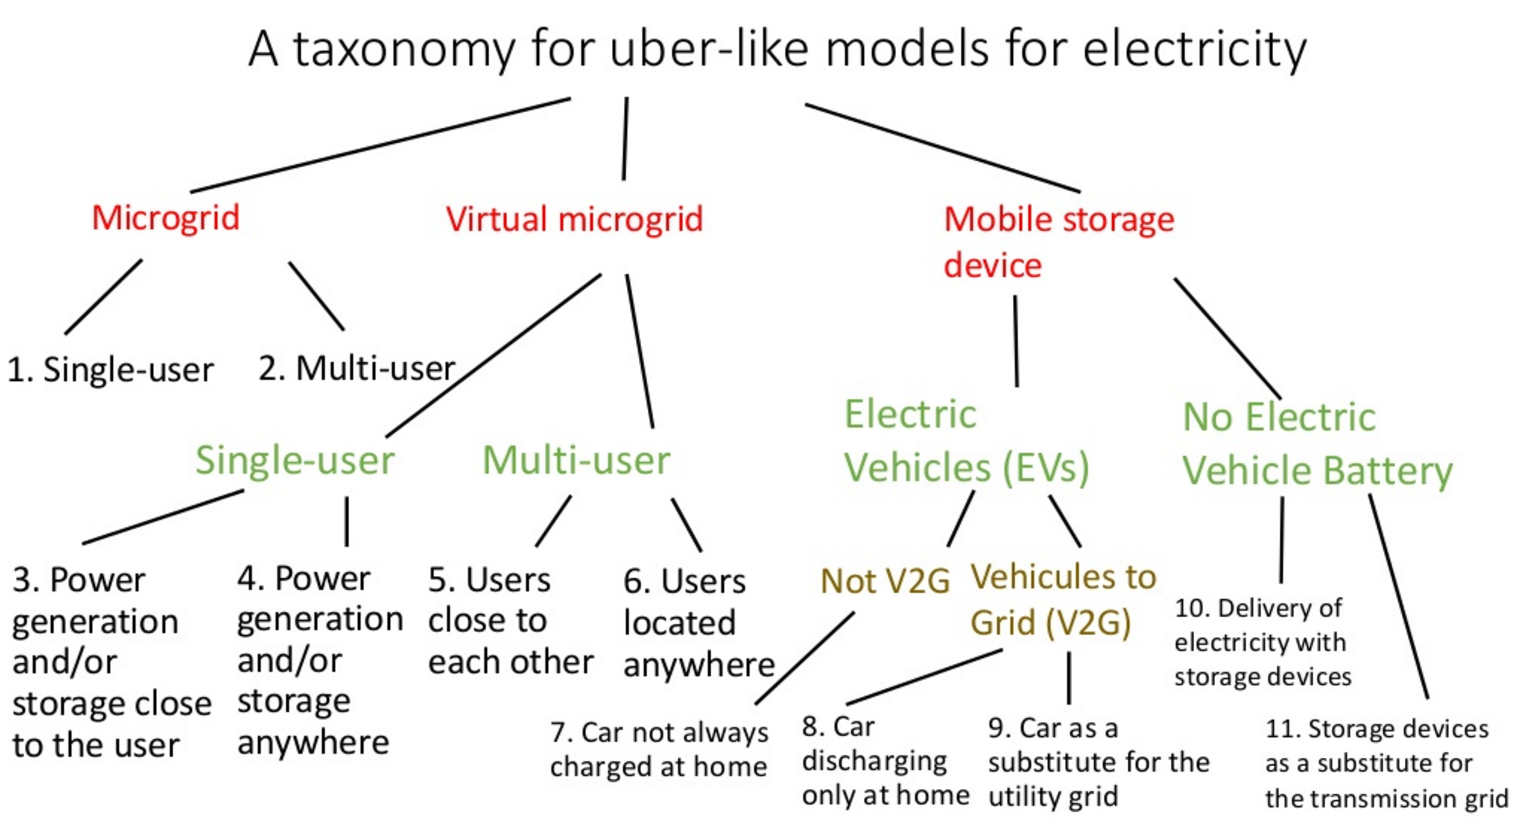 A taxonomy for uber-like models for electricity Microgrid 2. Multi-user 4. Power generation and/or storage anywhere Virtual microgrid Electric Vehicles (EVs) No Electric Vehicle Battery 5. Users close to each other Mobile storage device 1. Single-user Single-user 3. Power generation and/or storage close to the user Multi-user 6. Users located anywhere Vehicules to Grid (V2G) Not V2G 7. Car not always charged at home 8. Car discharging only at home 9. Car as a substitute for the utility grid 10. Delivery of electricity with storage devices 11. Storage devices as a substitute for the transmission grid